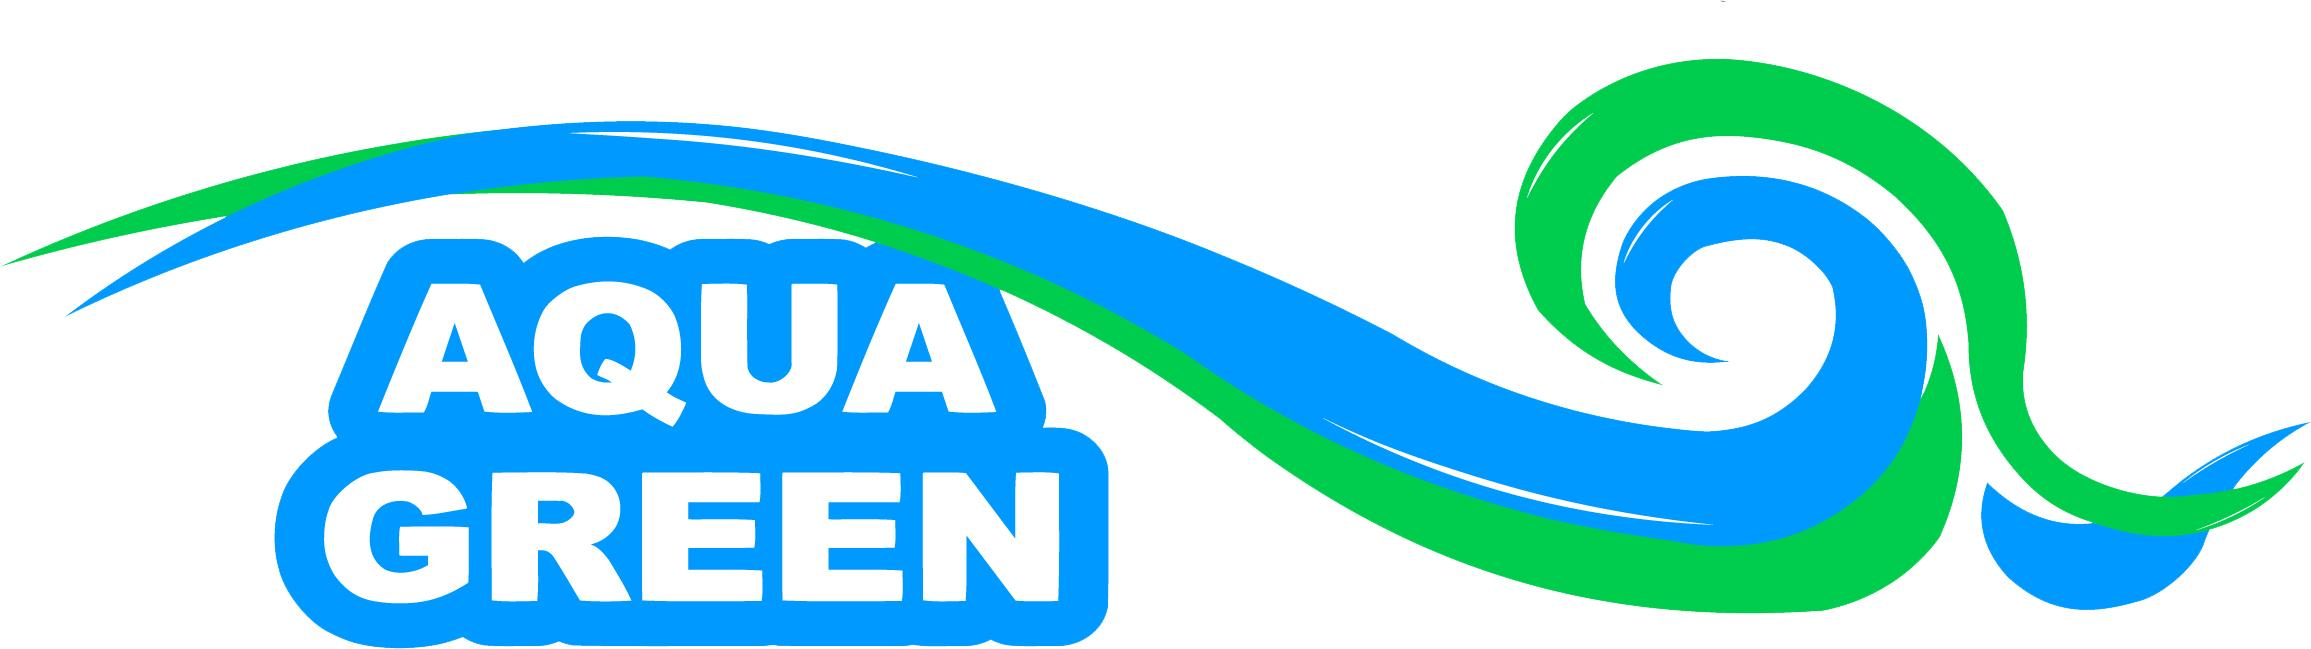 aquagreen logo_1_14